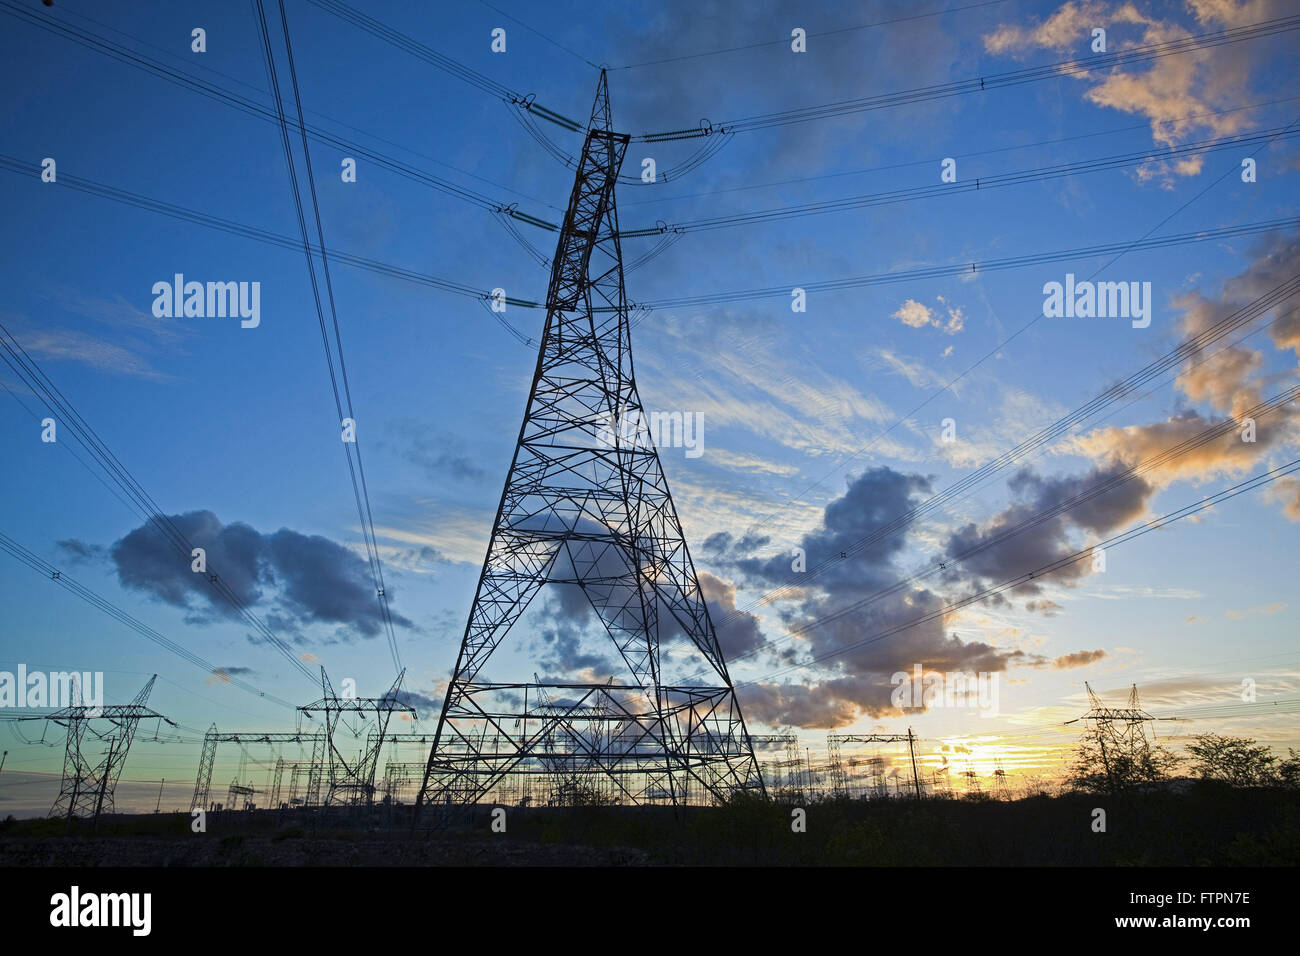 Towers for transmission of electric power generated in Paulo Afonso Hydroelectric Complex - Stock Image